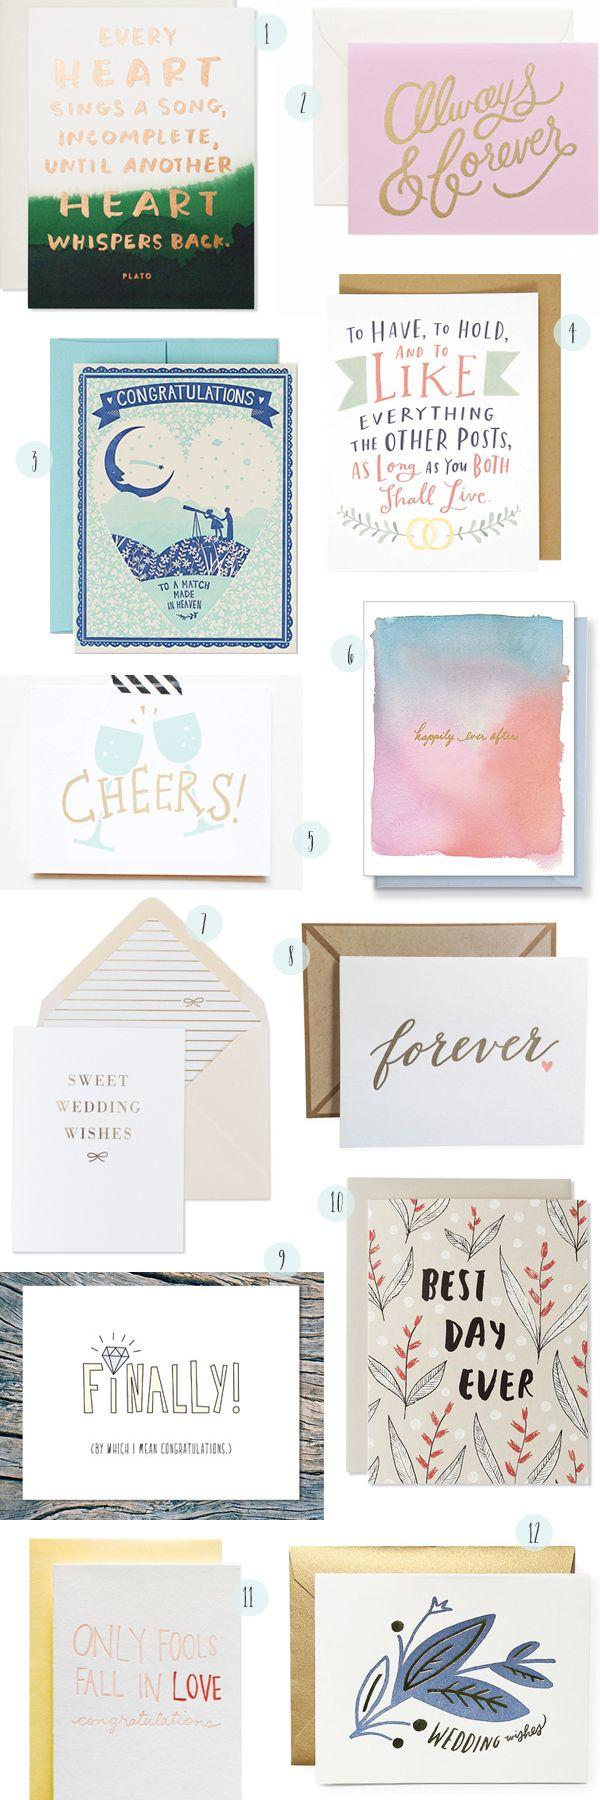 Wedding Congratulations Cards Round Up by Oh So Beautiful Paper with Sycamore Street Press Rifle Paper Co Moglea and more!